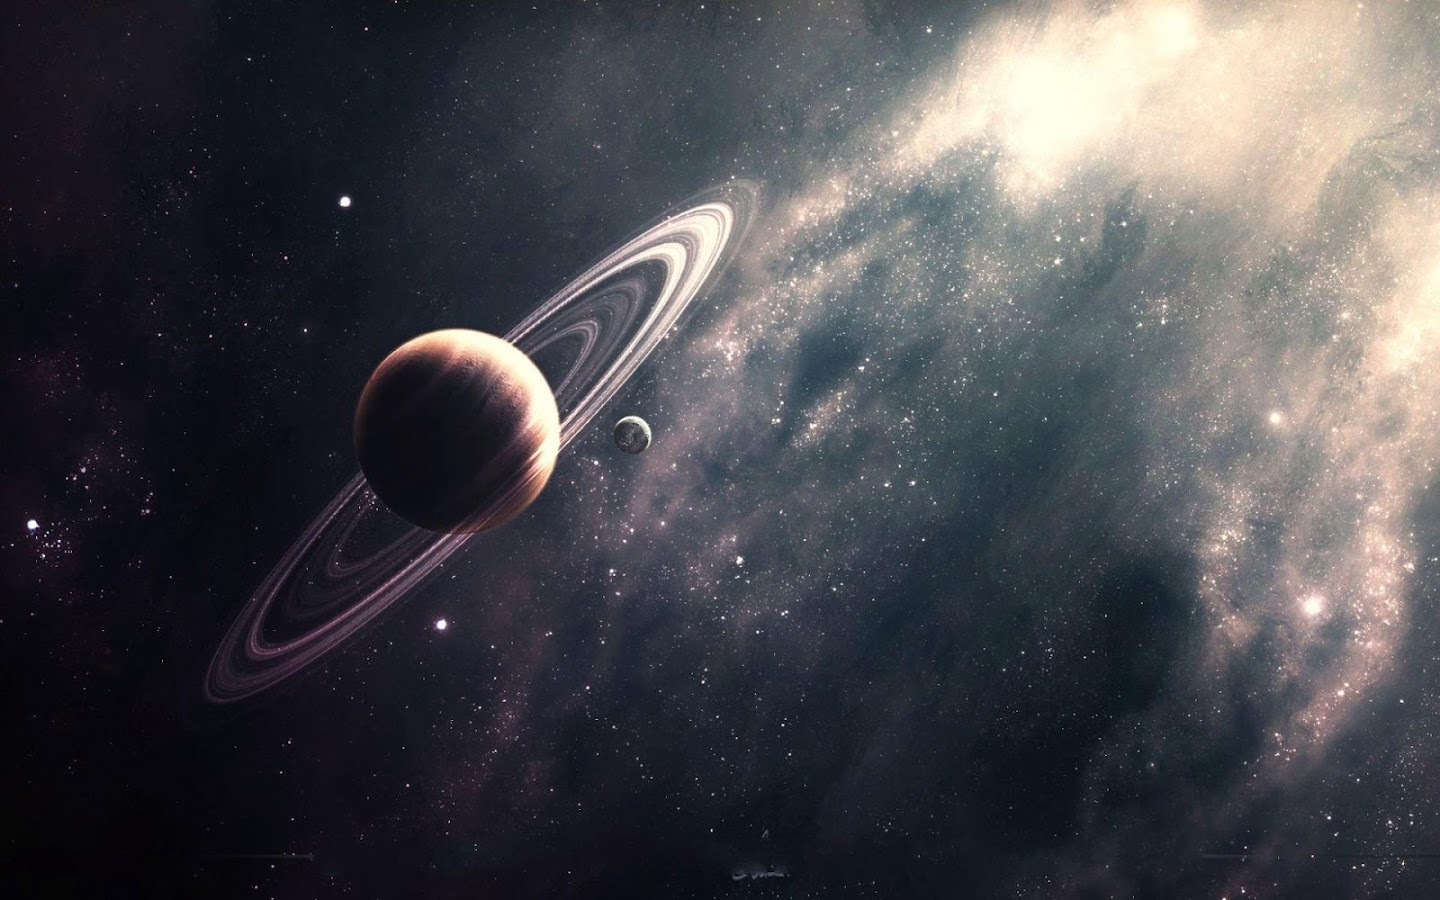 Saturn Live Wallpaper 1 30 APK Download - Android Personalization Apps